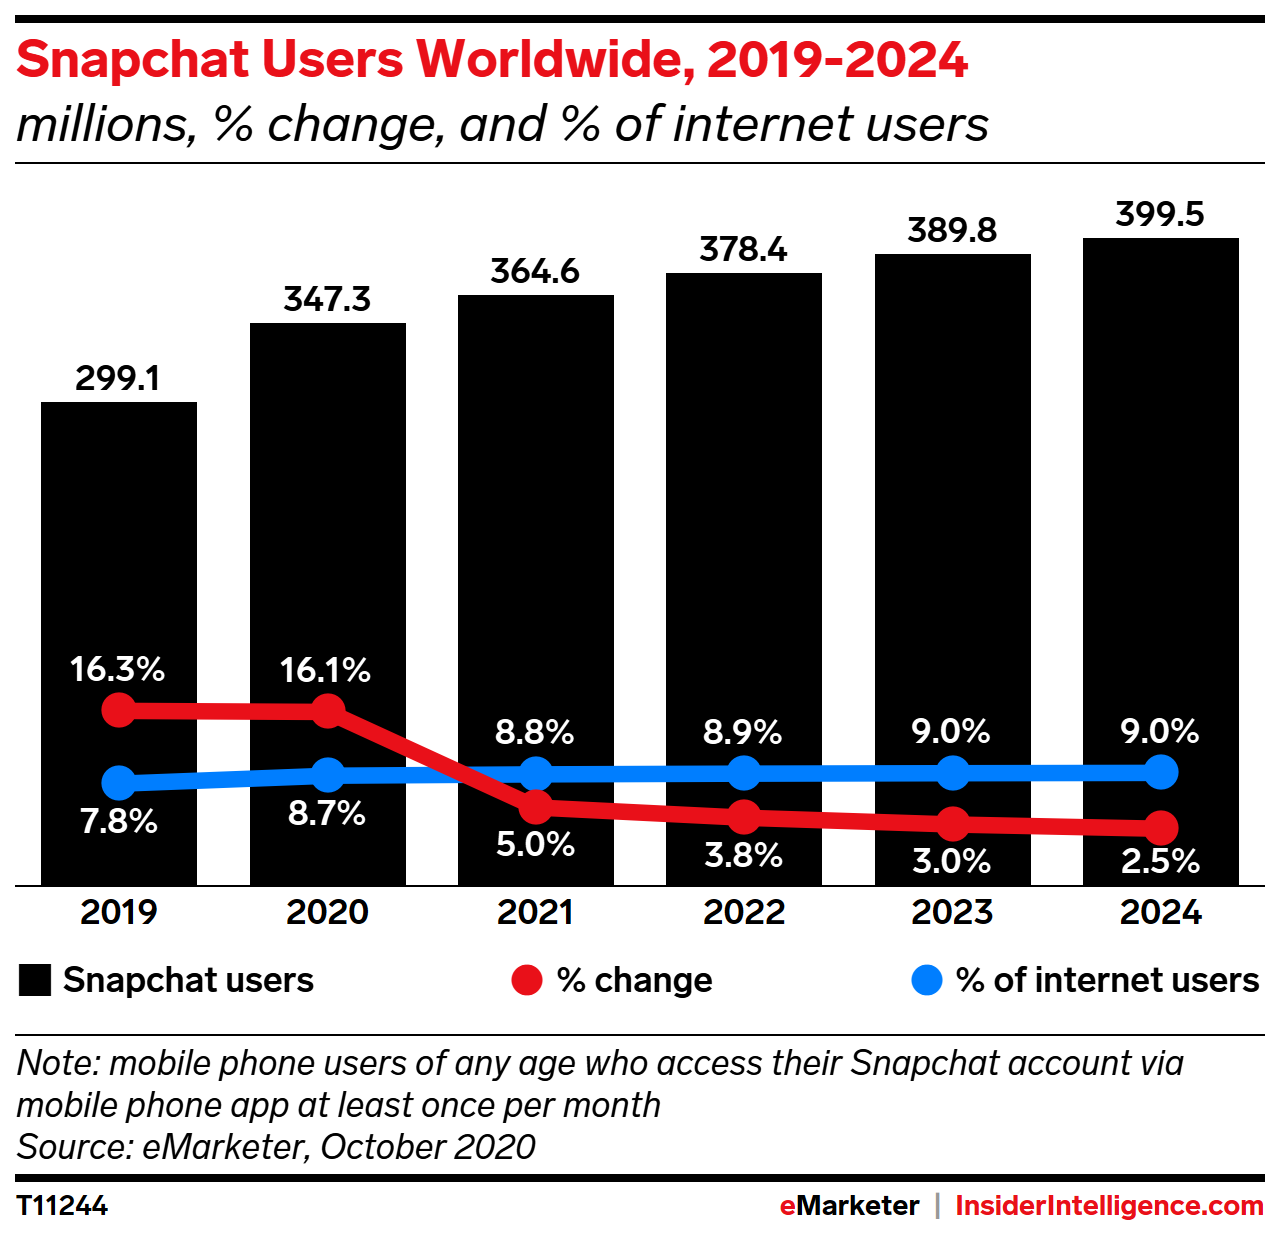 Snapchat Users Worldwide, 2019-2024 (millions, % change, and % of internet users)